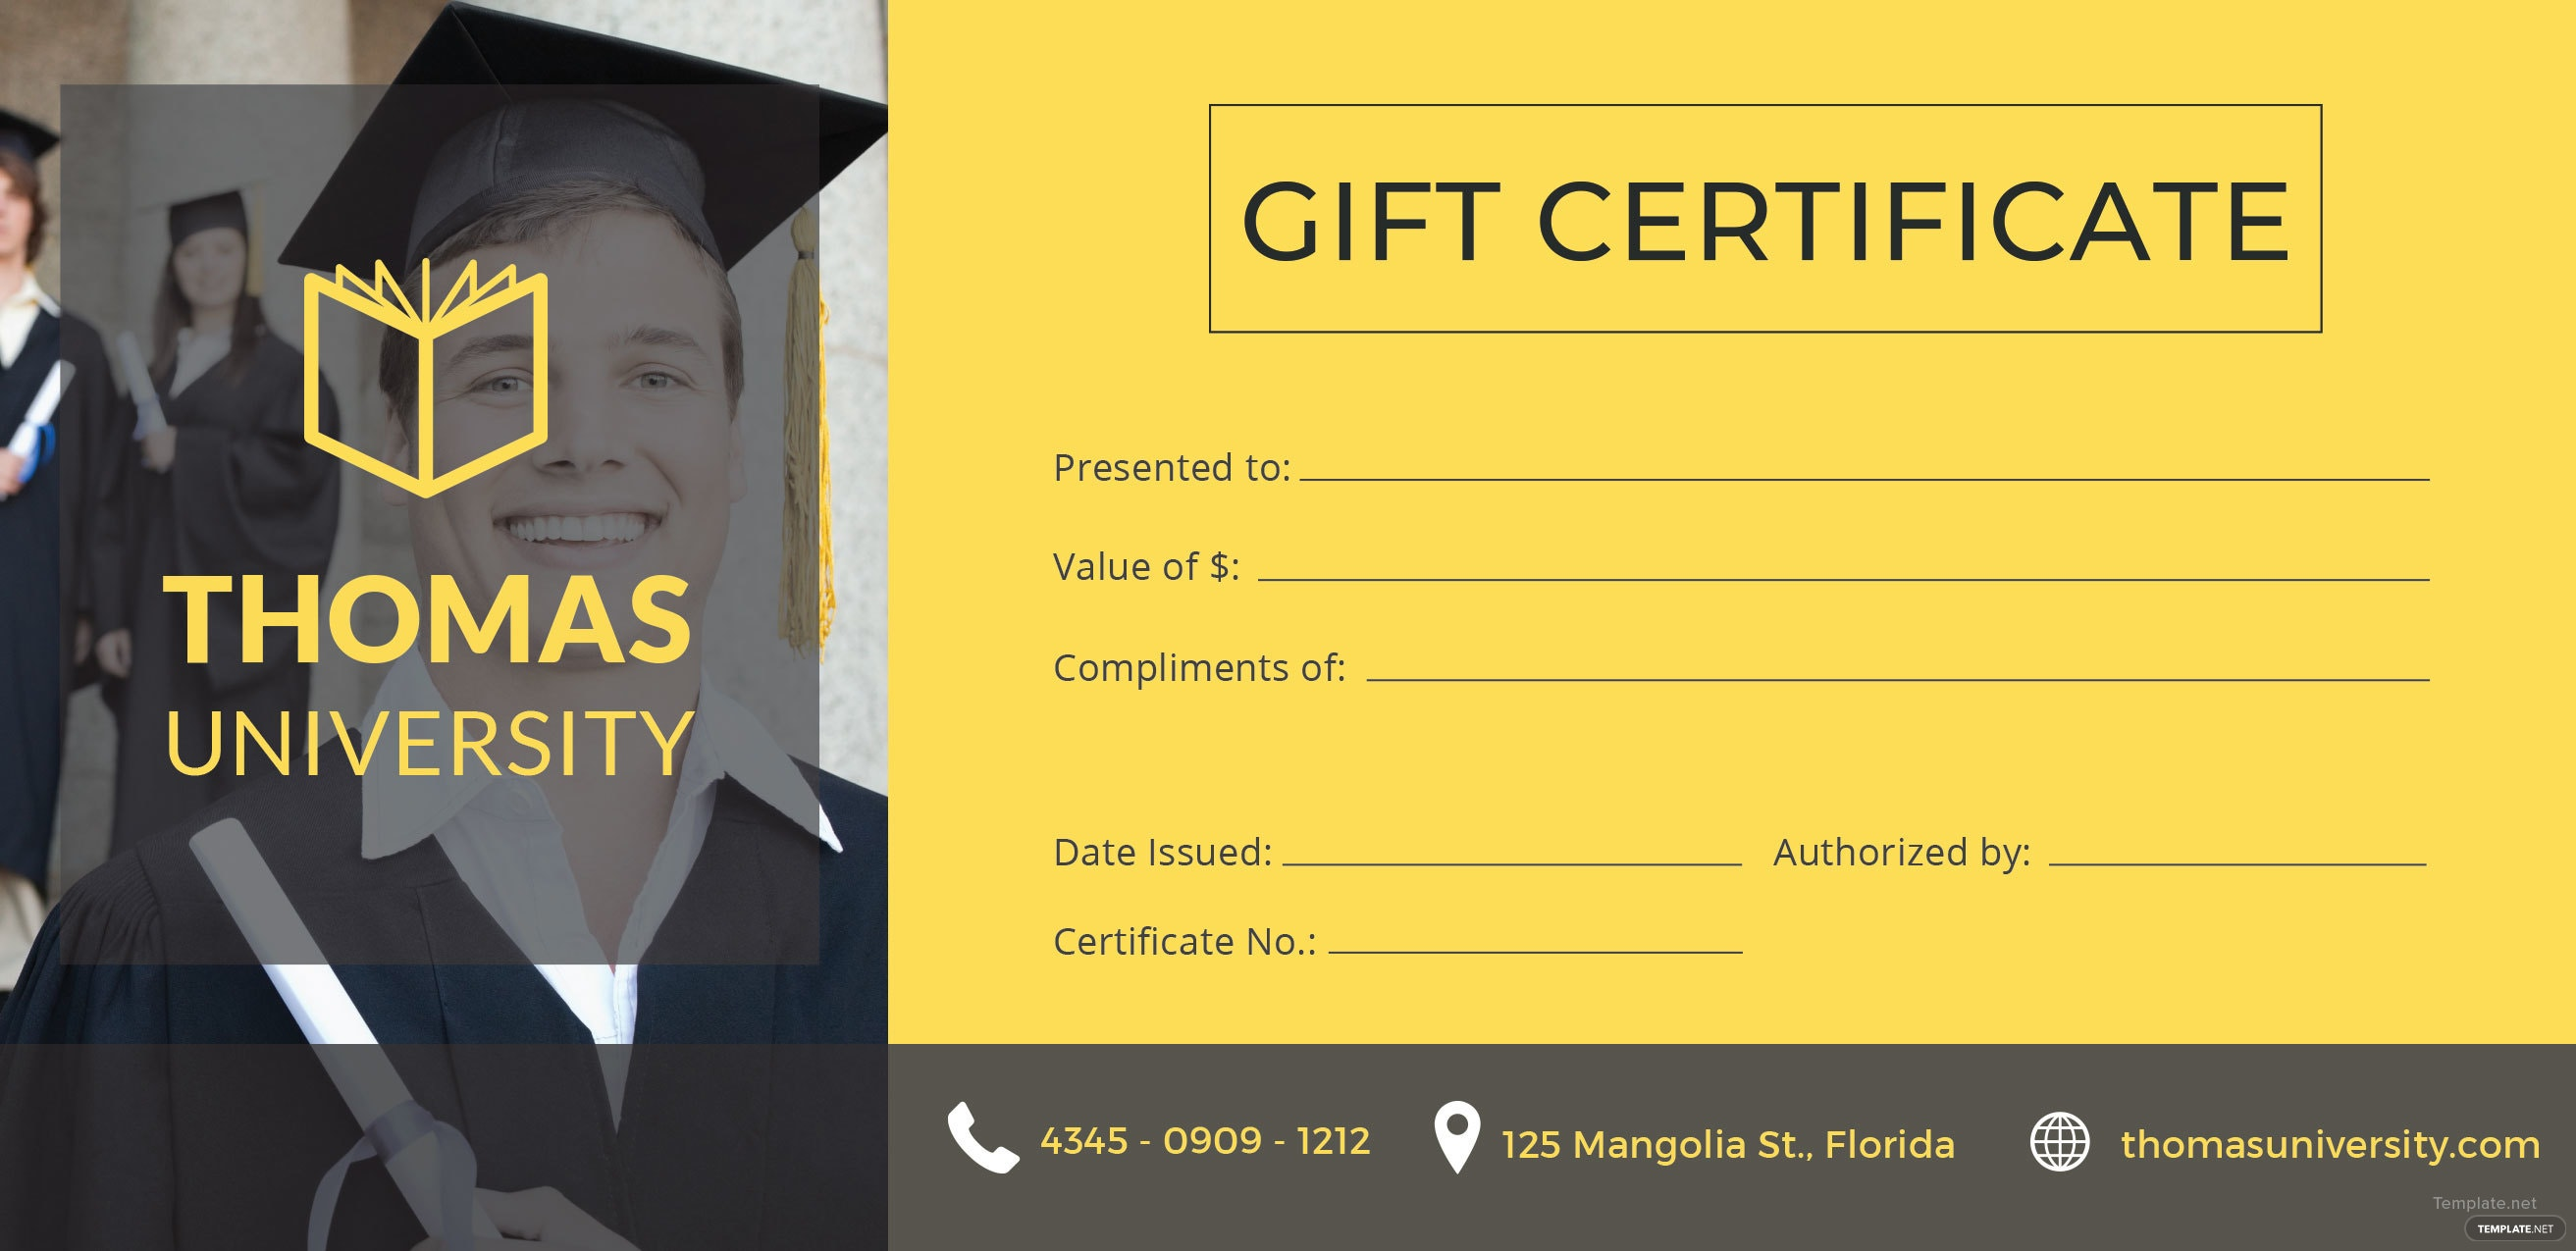 Free graduation gift certificate template in adobe illustrator graduation gift certificate template free download yelopaper Choice Image